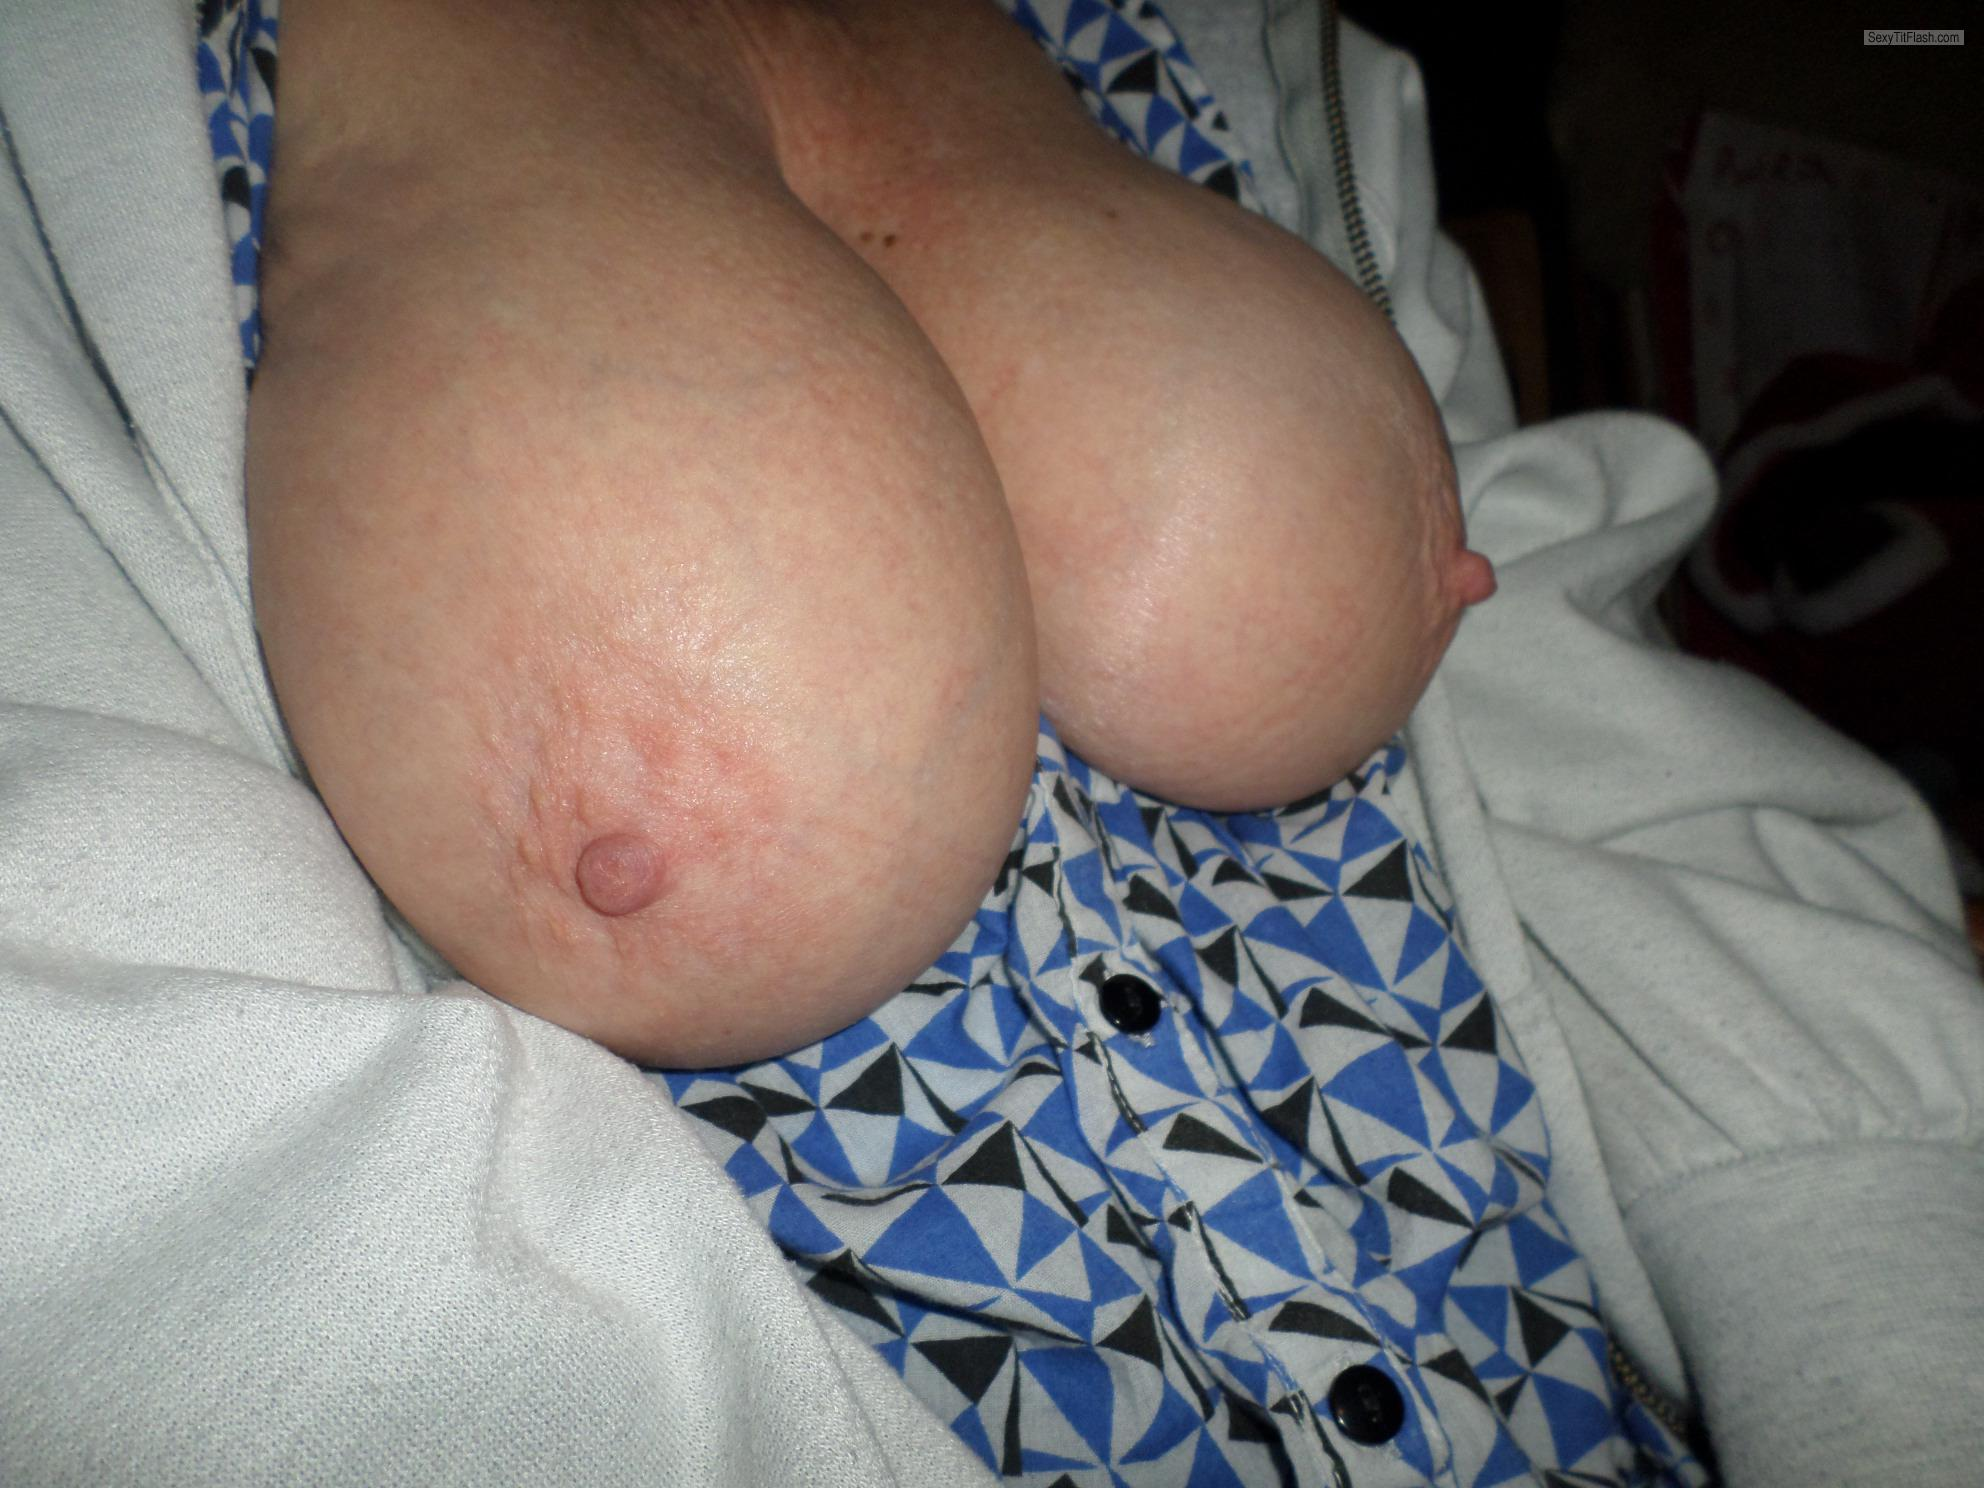 Tit Flash: My Big Tits - Horny 1 from United Kingdom